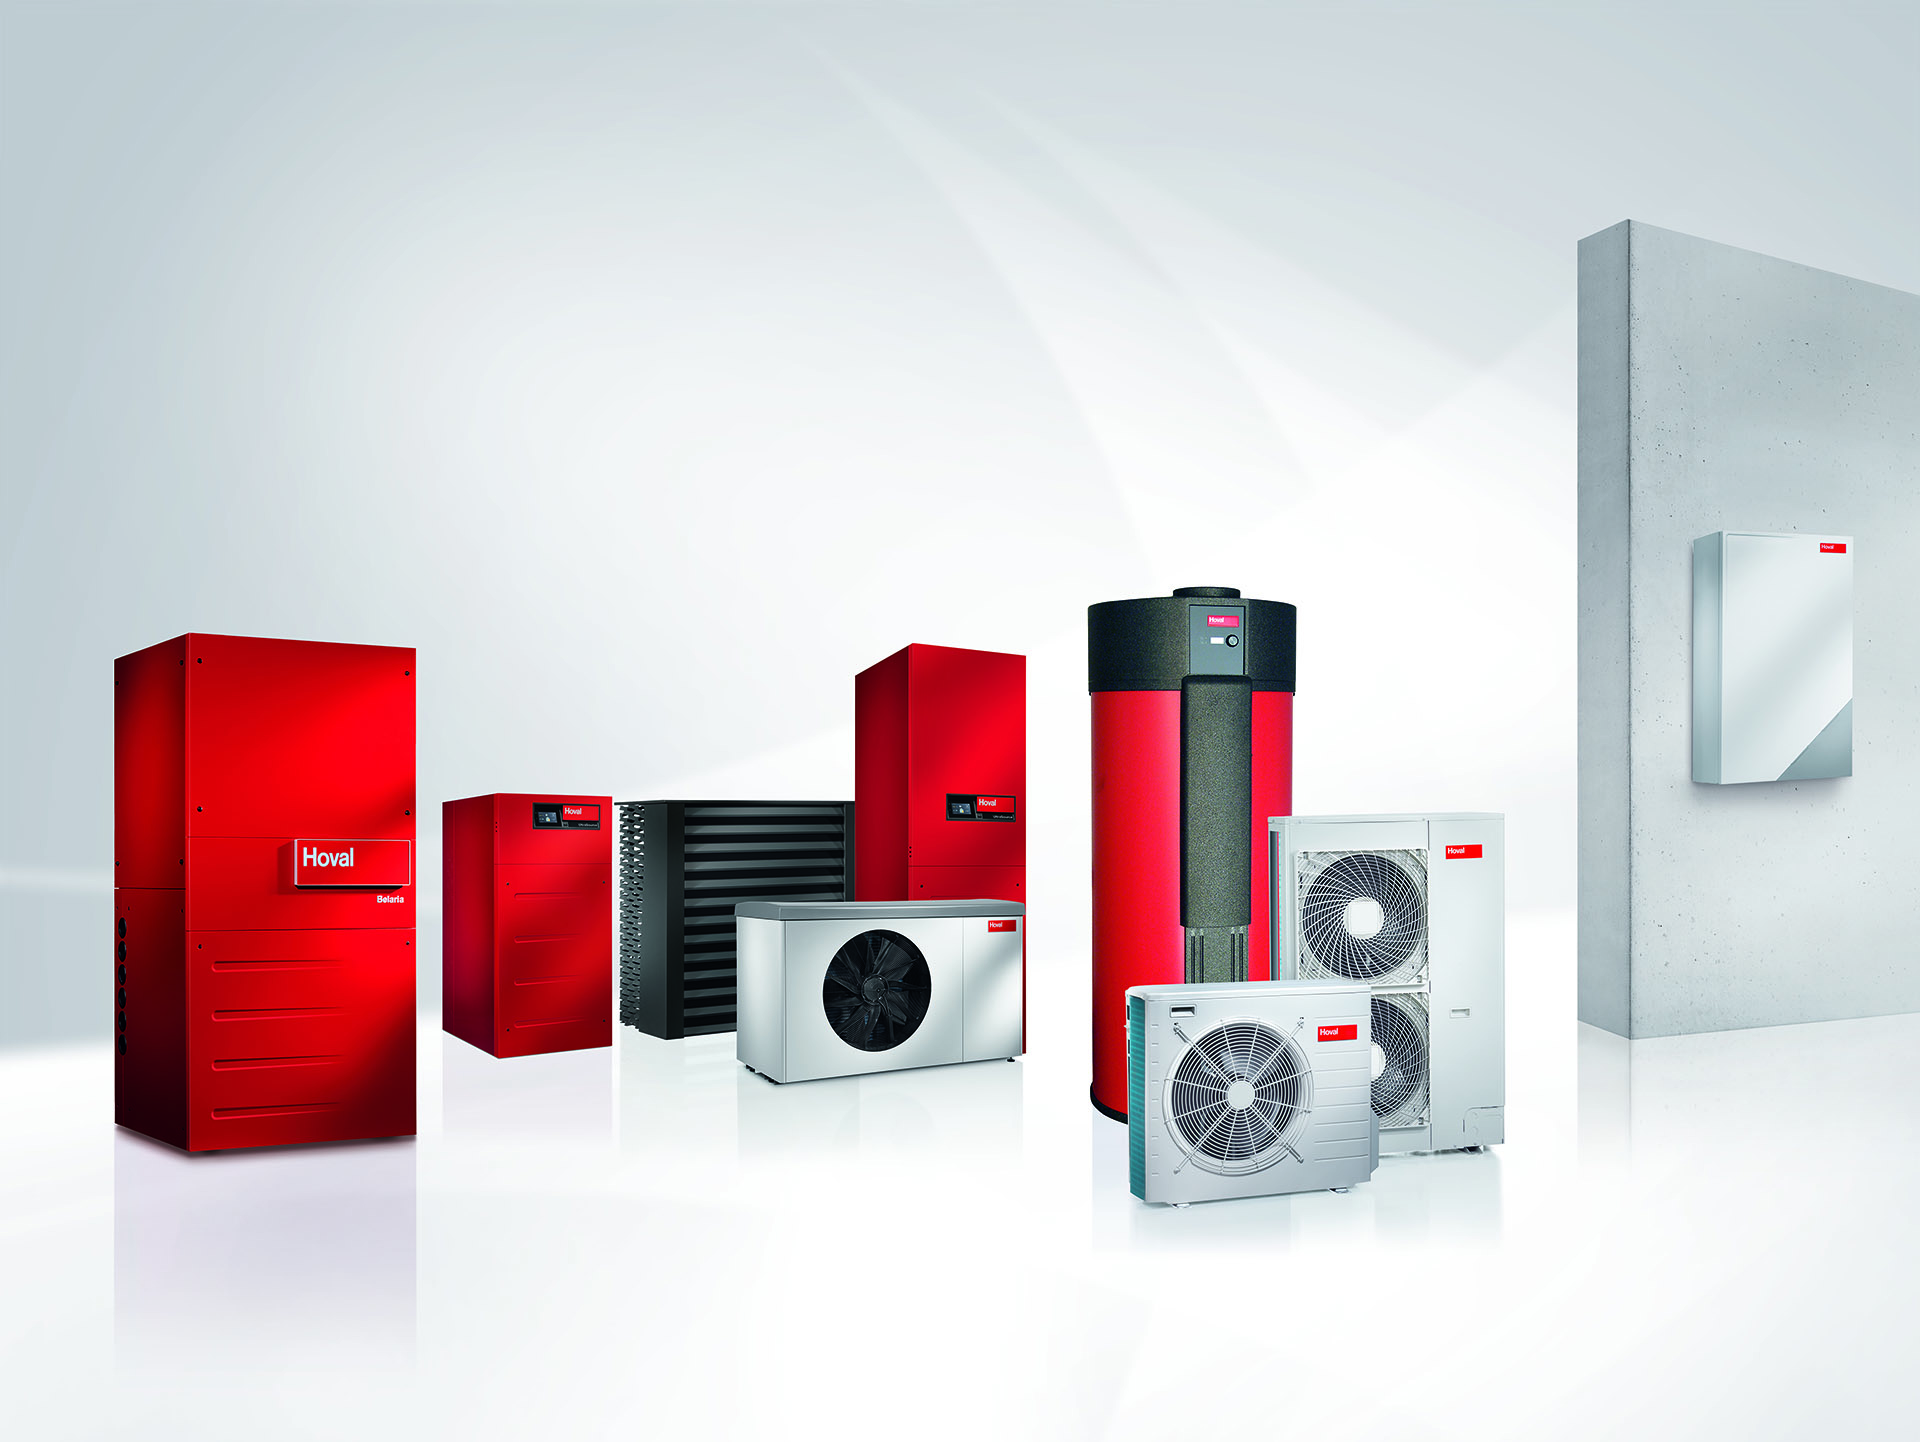 Devices for Hoval heat pump system